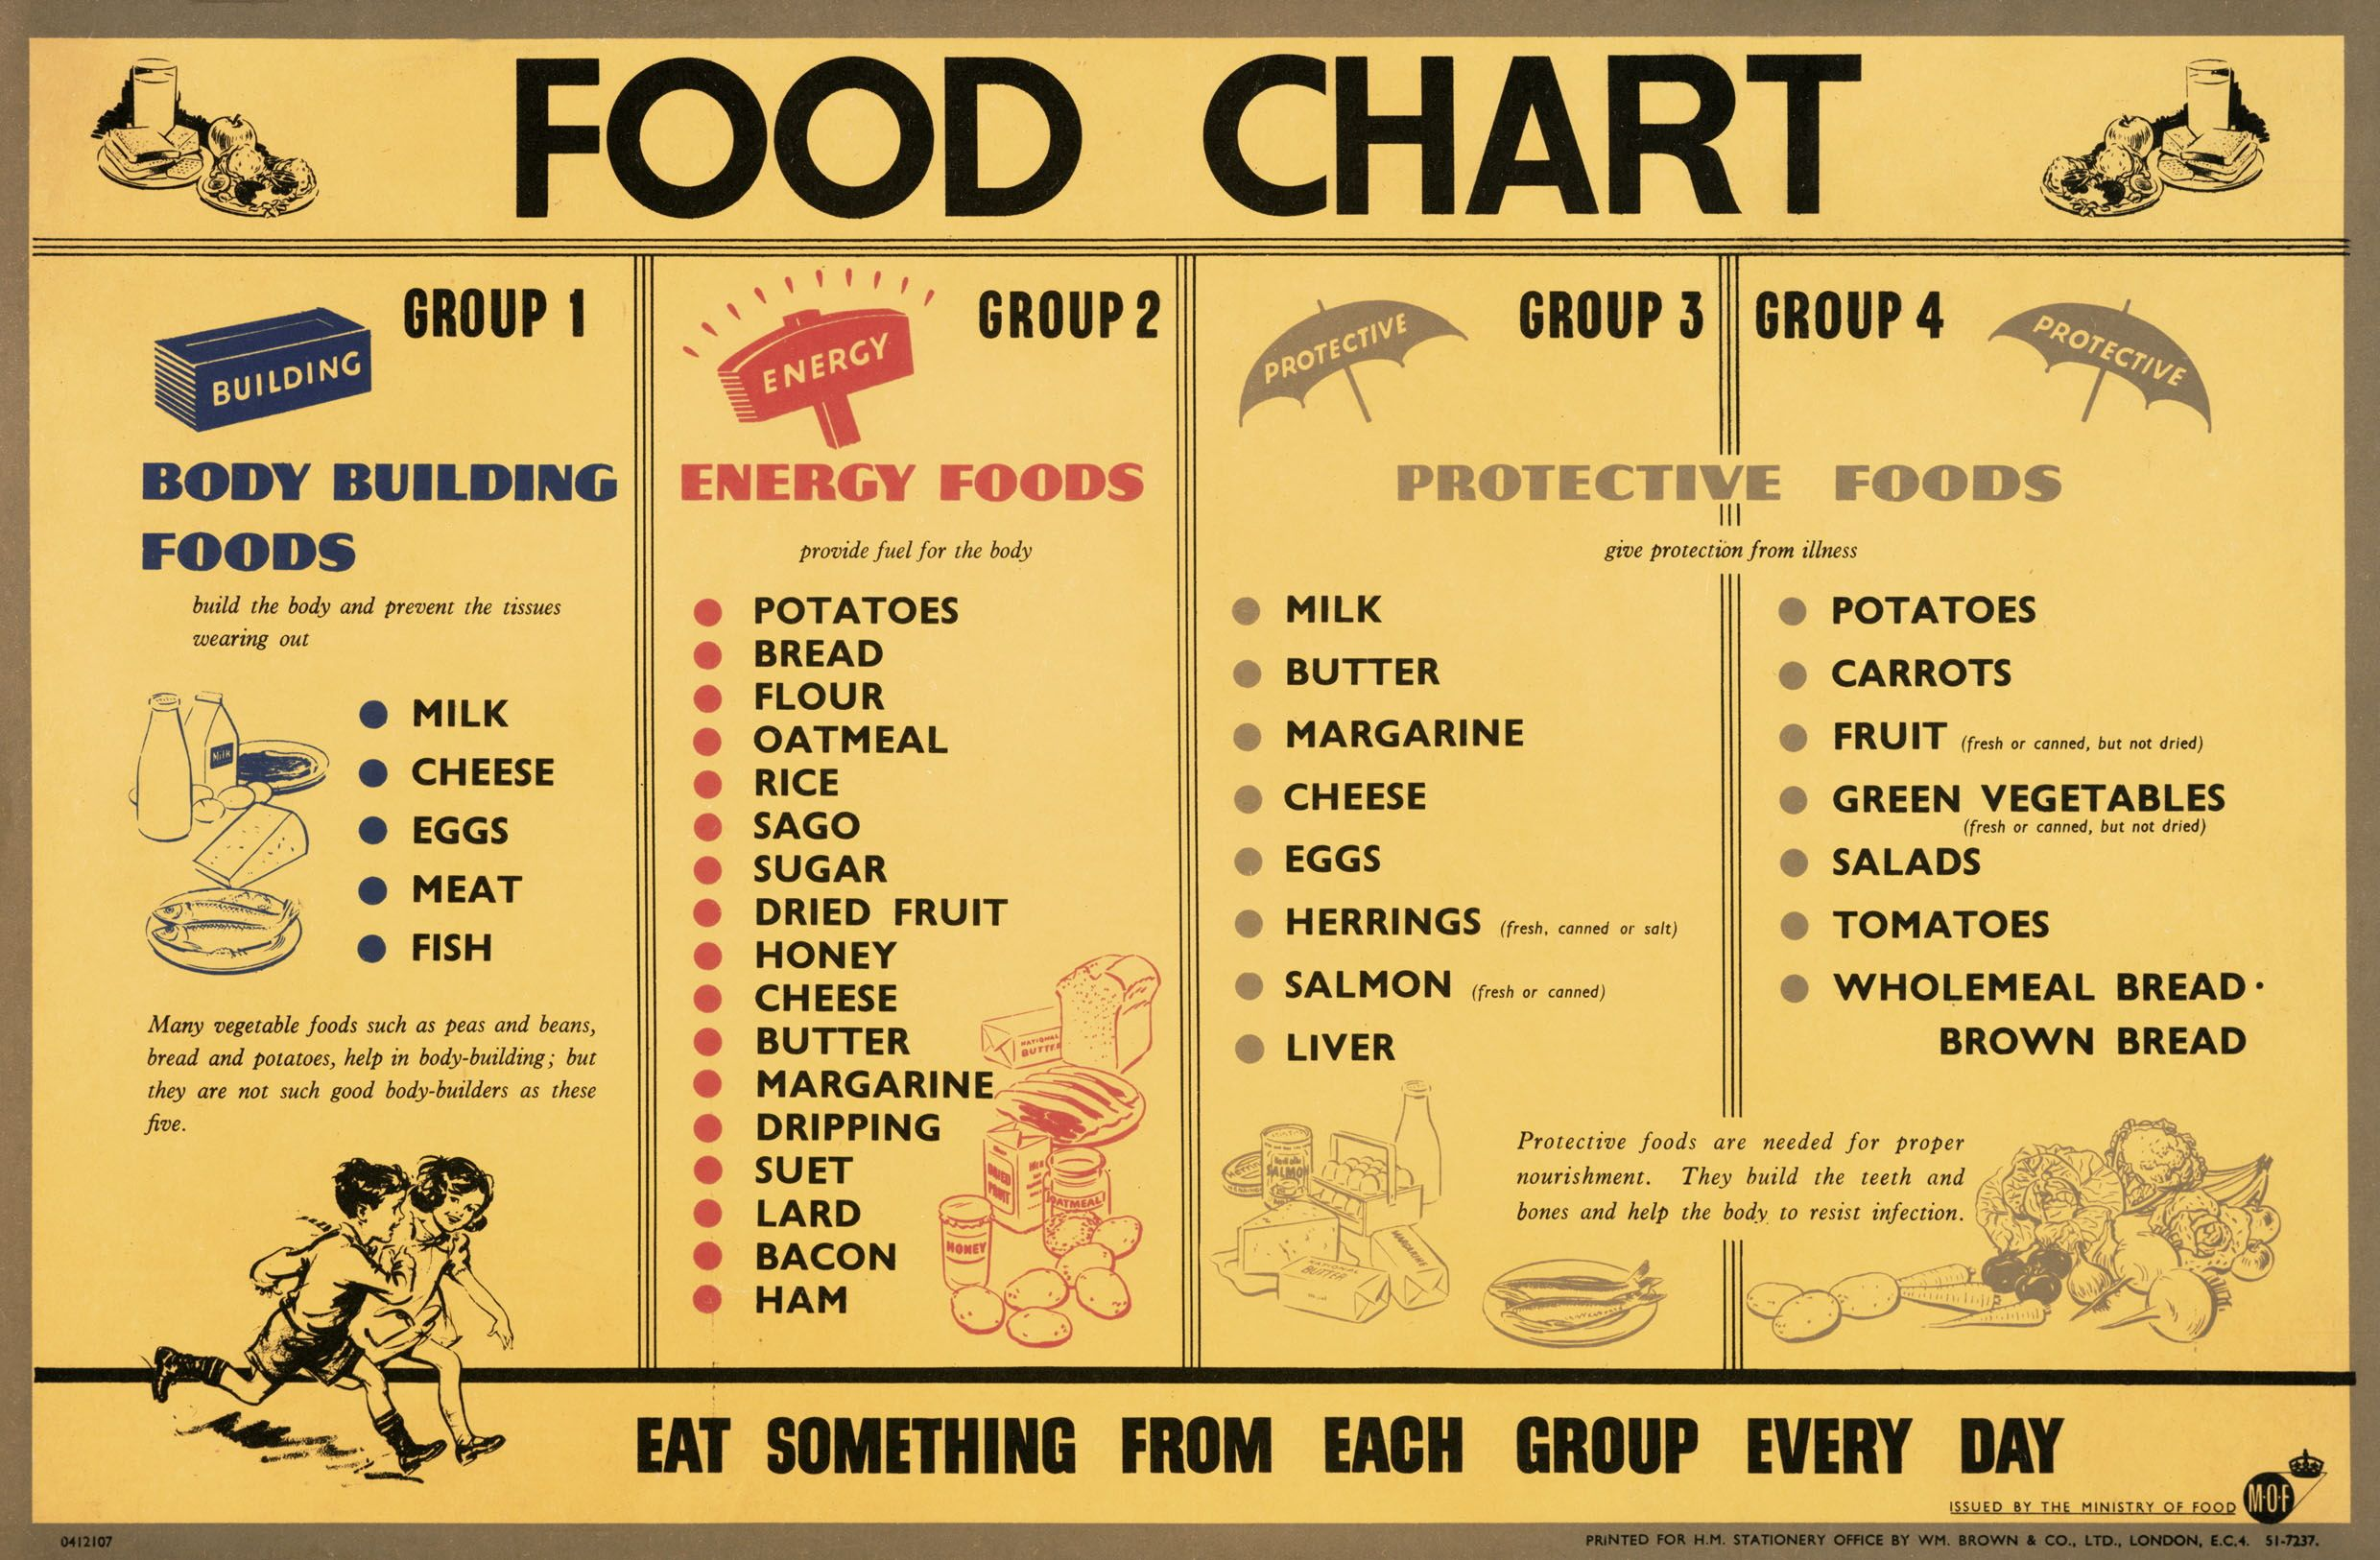 High fiber food chart food chart eat something from each group a wwii food chart showing the food groups body building foods energy foods and protective foods eat something from each group every day nvjuhfo Gallery